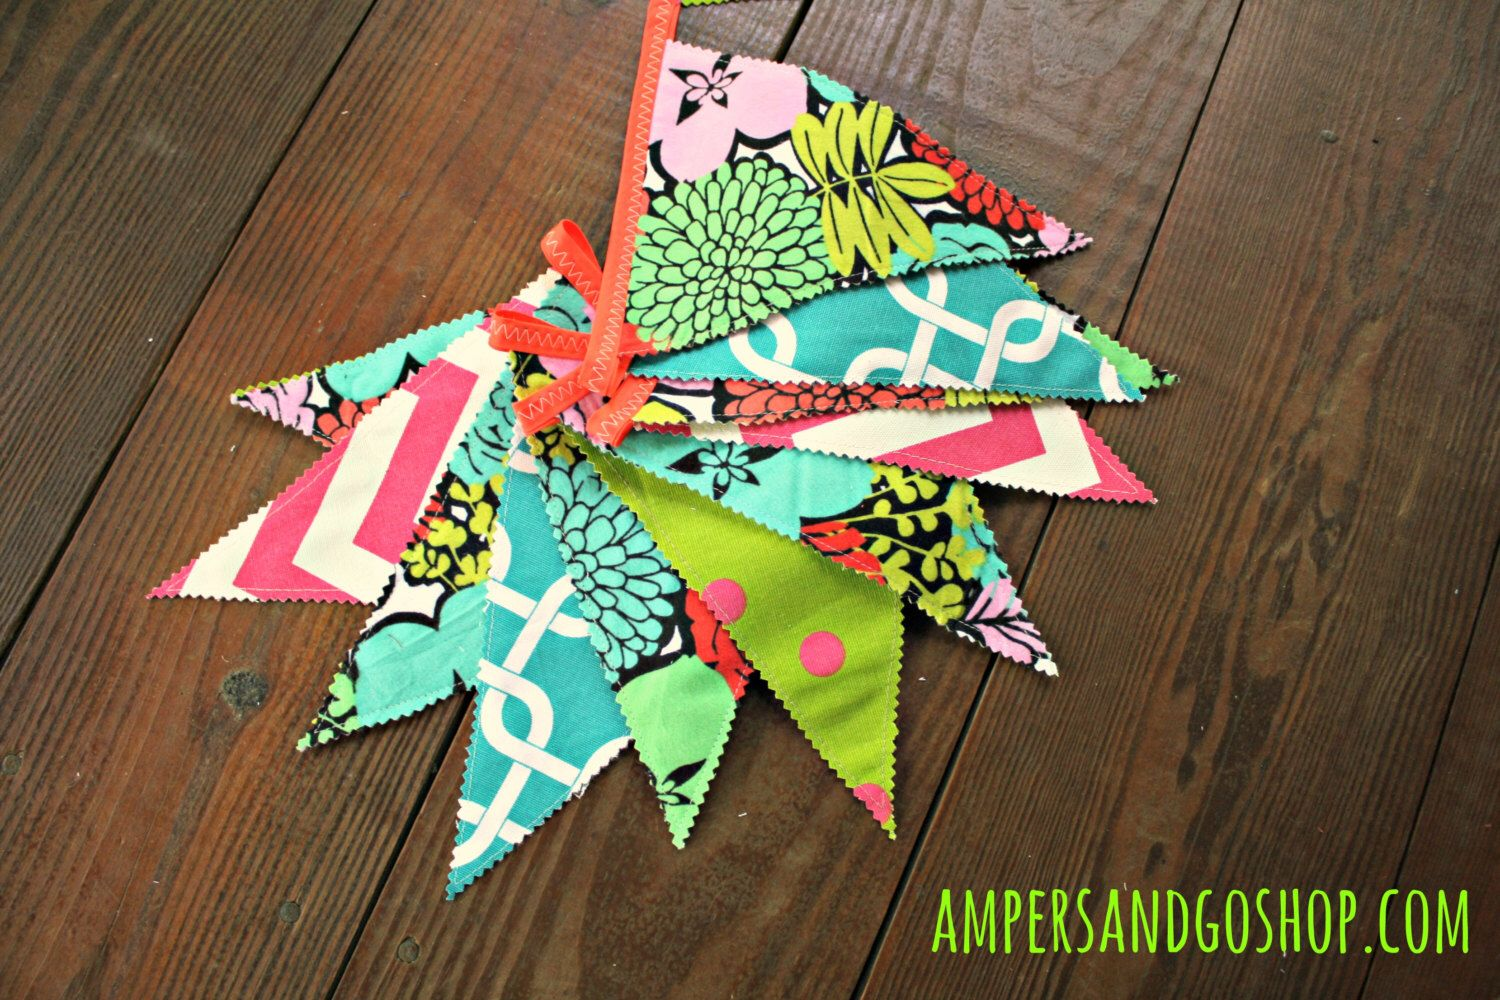 Neon boho party banner summer love fabric flags calypso party